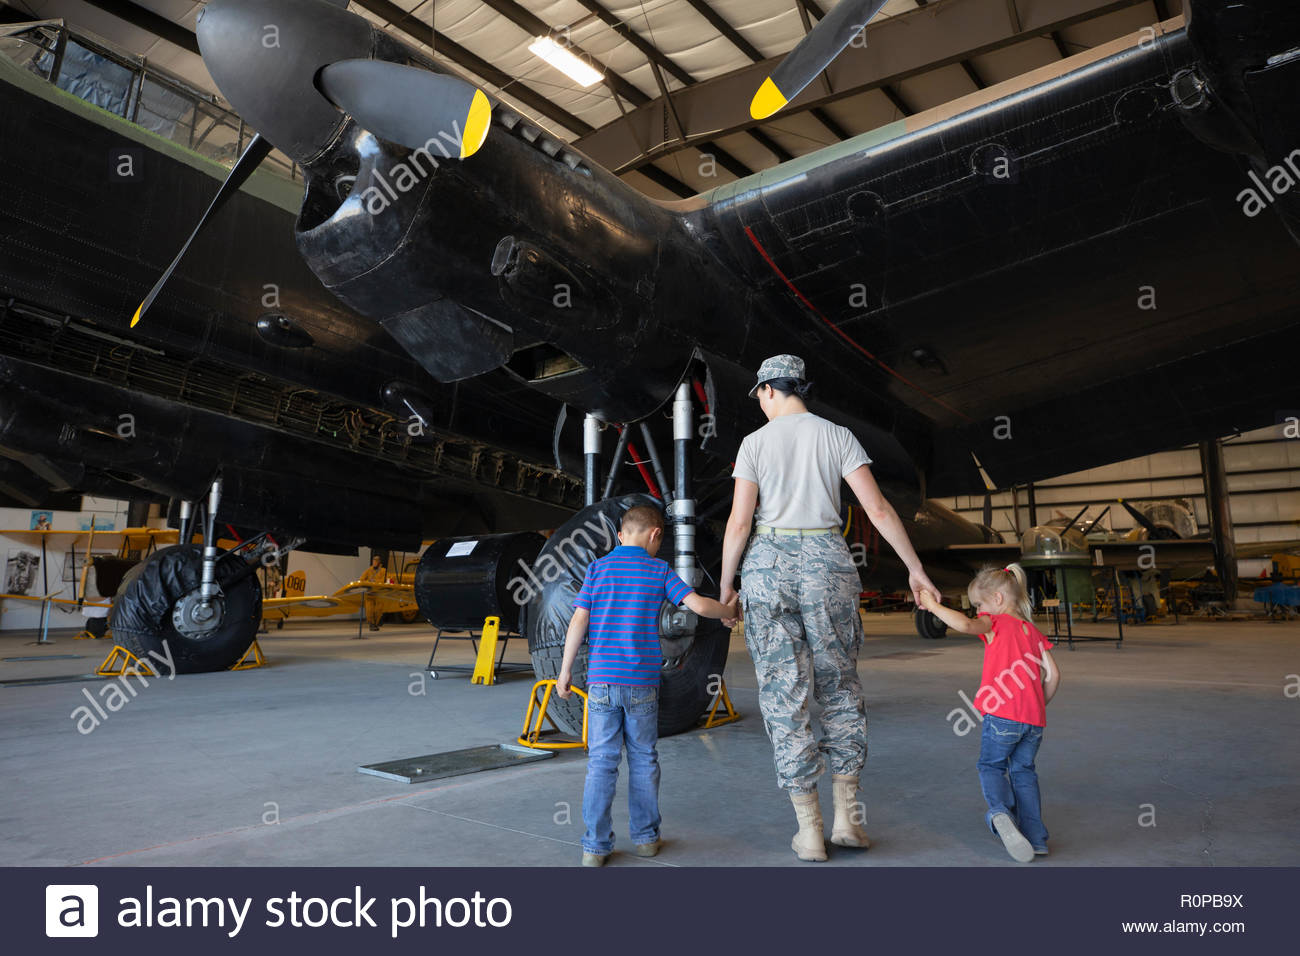 Female army engineer mother walking with children in military airplane hangar - Stock Image